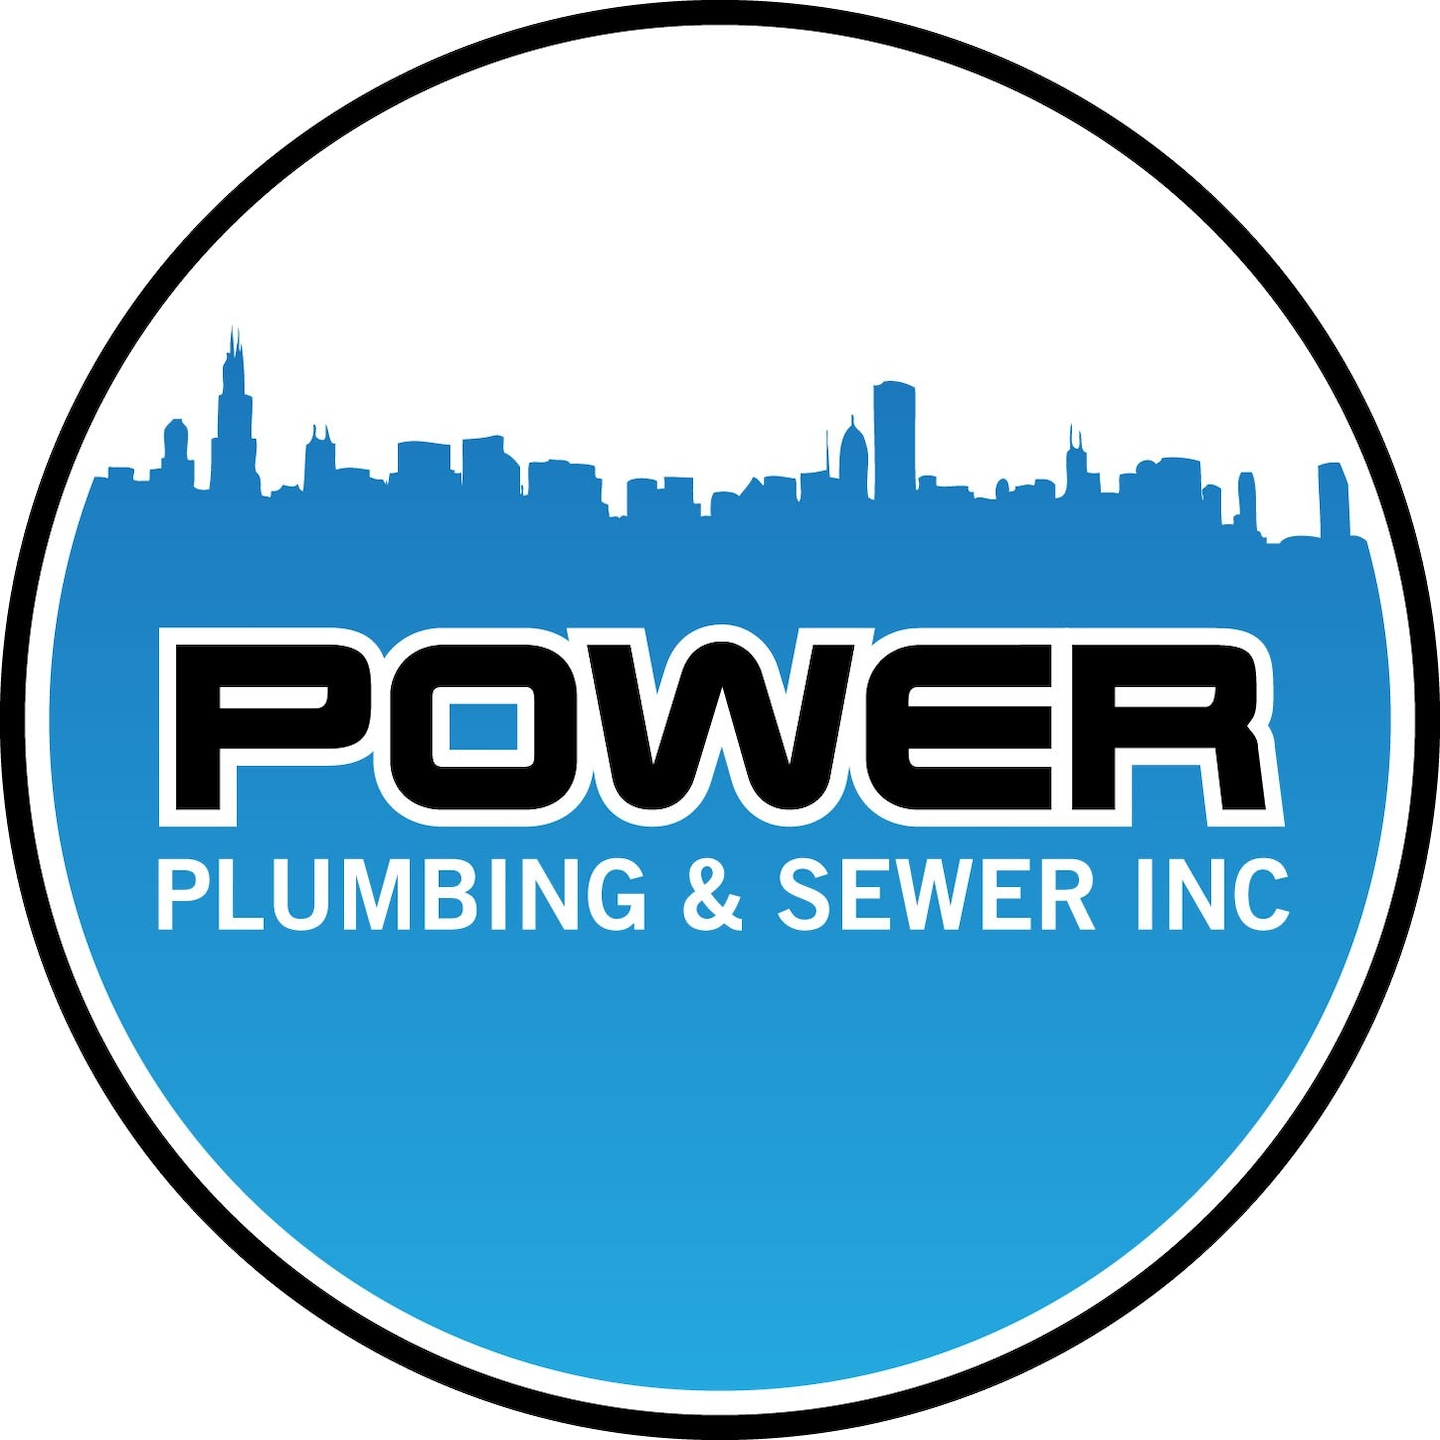 Power Plumbing & Sewer Contractor Inc logo